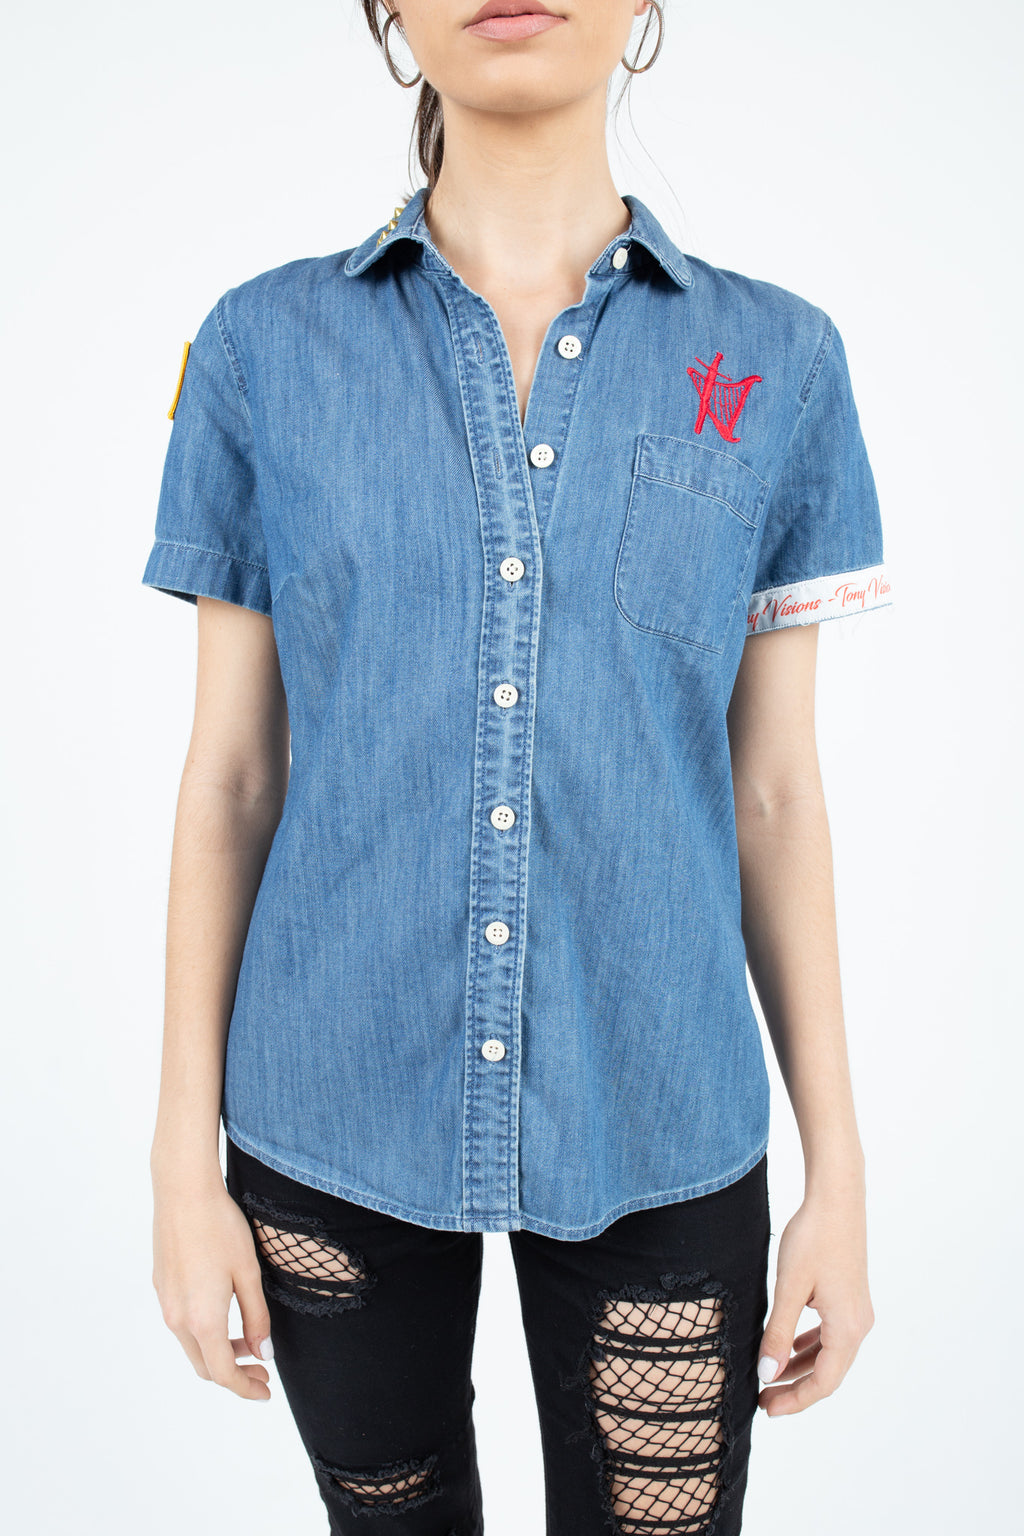 Denim Neutral Woman's Shirt